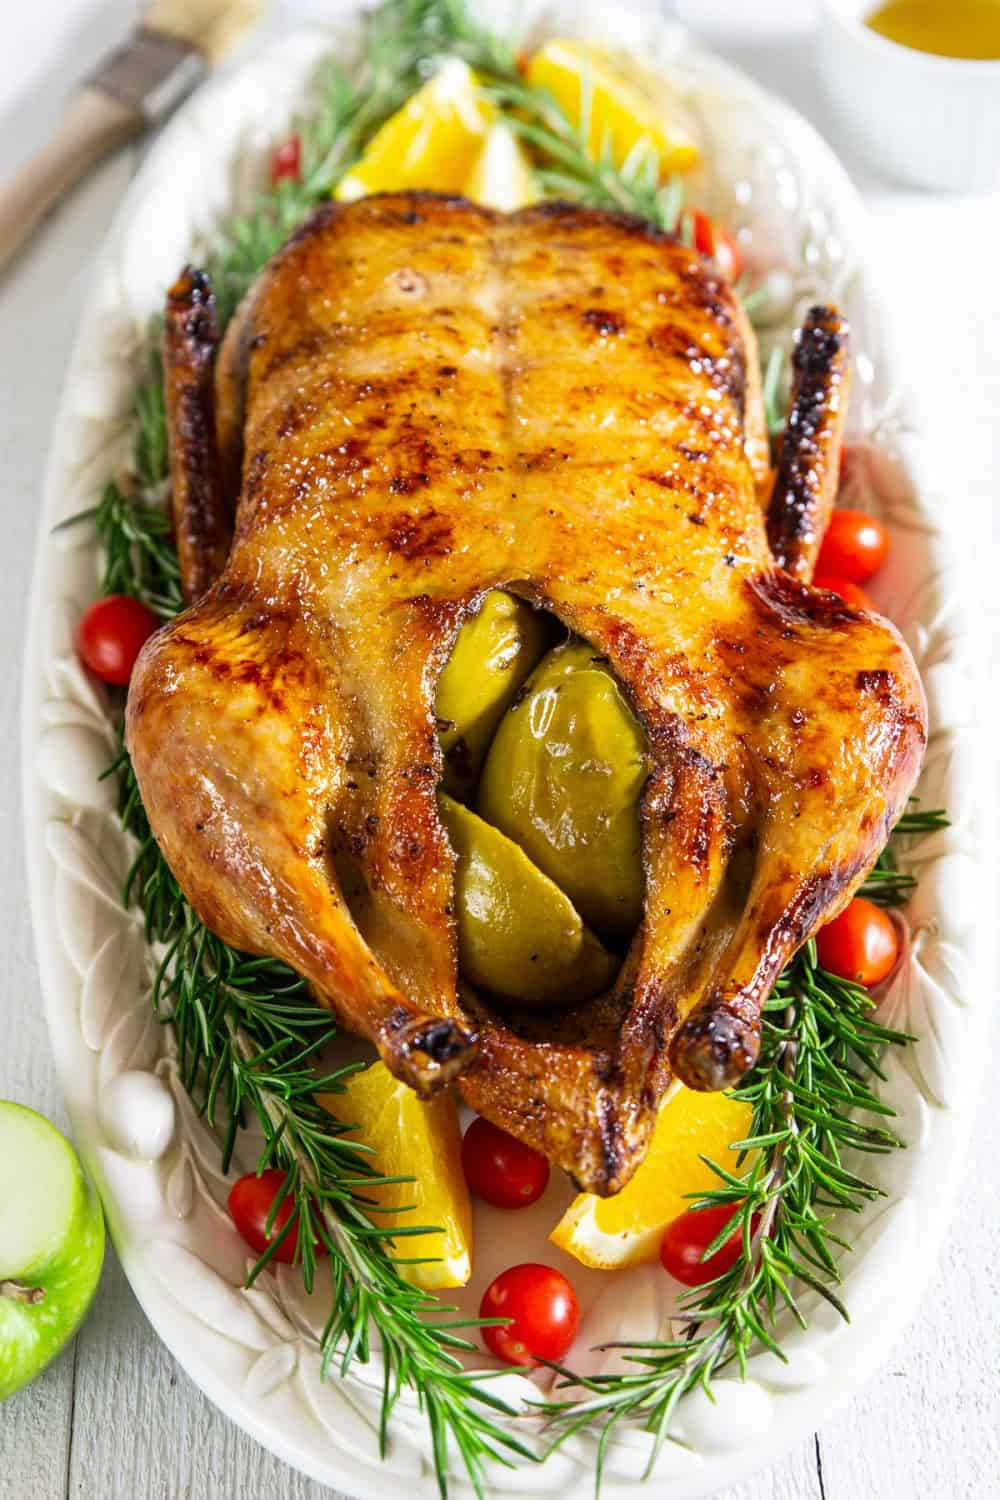 This crispy golden skin roast duck recipe is a perfect holiday meal option to celebrate with your family with delicious flavor.